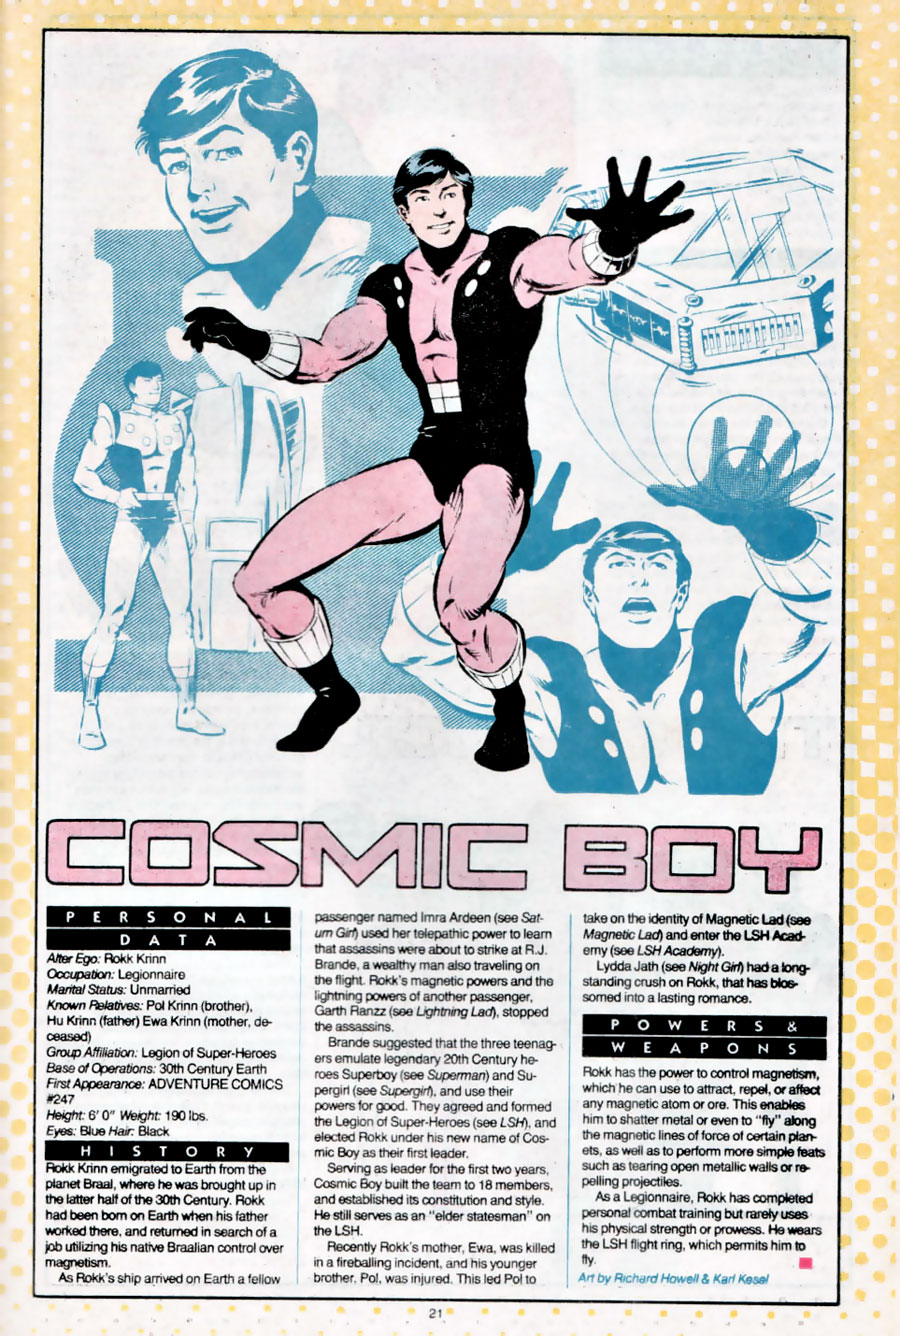 Cosmic Boy of the Legion of Super-heroes by Richard Howell and Karl Kesel from Who's Who